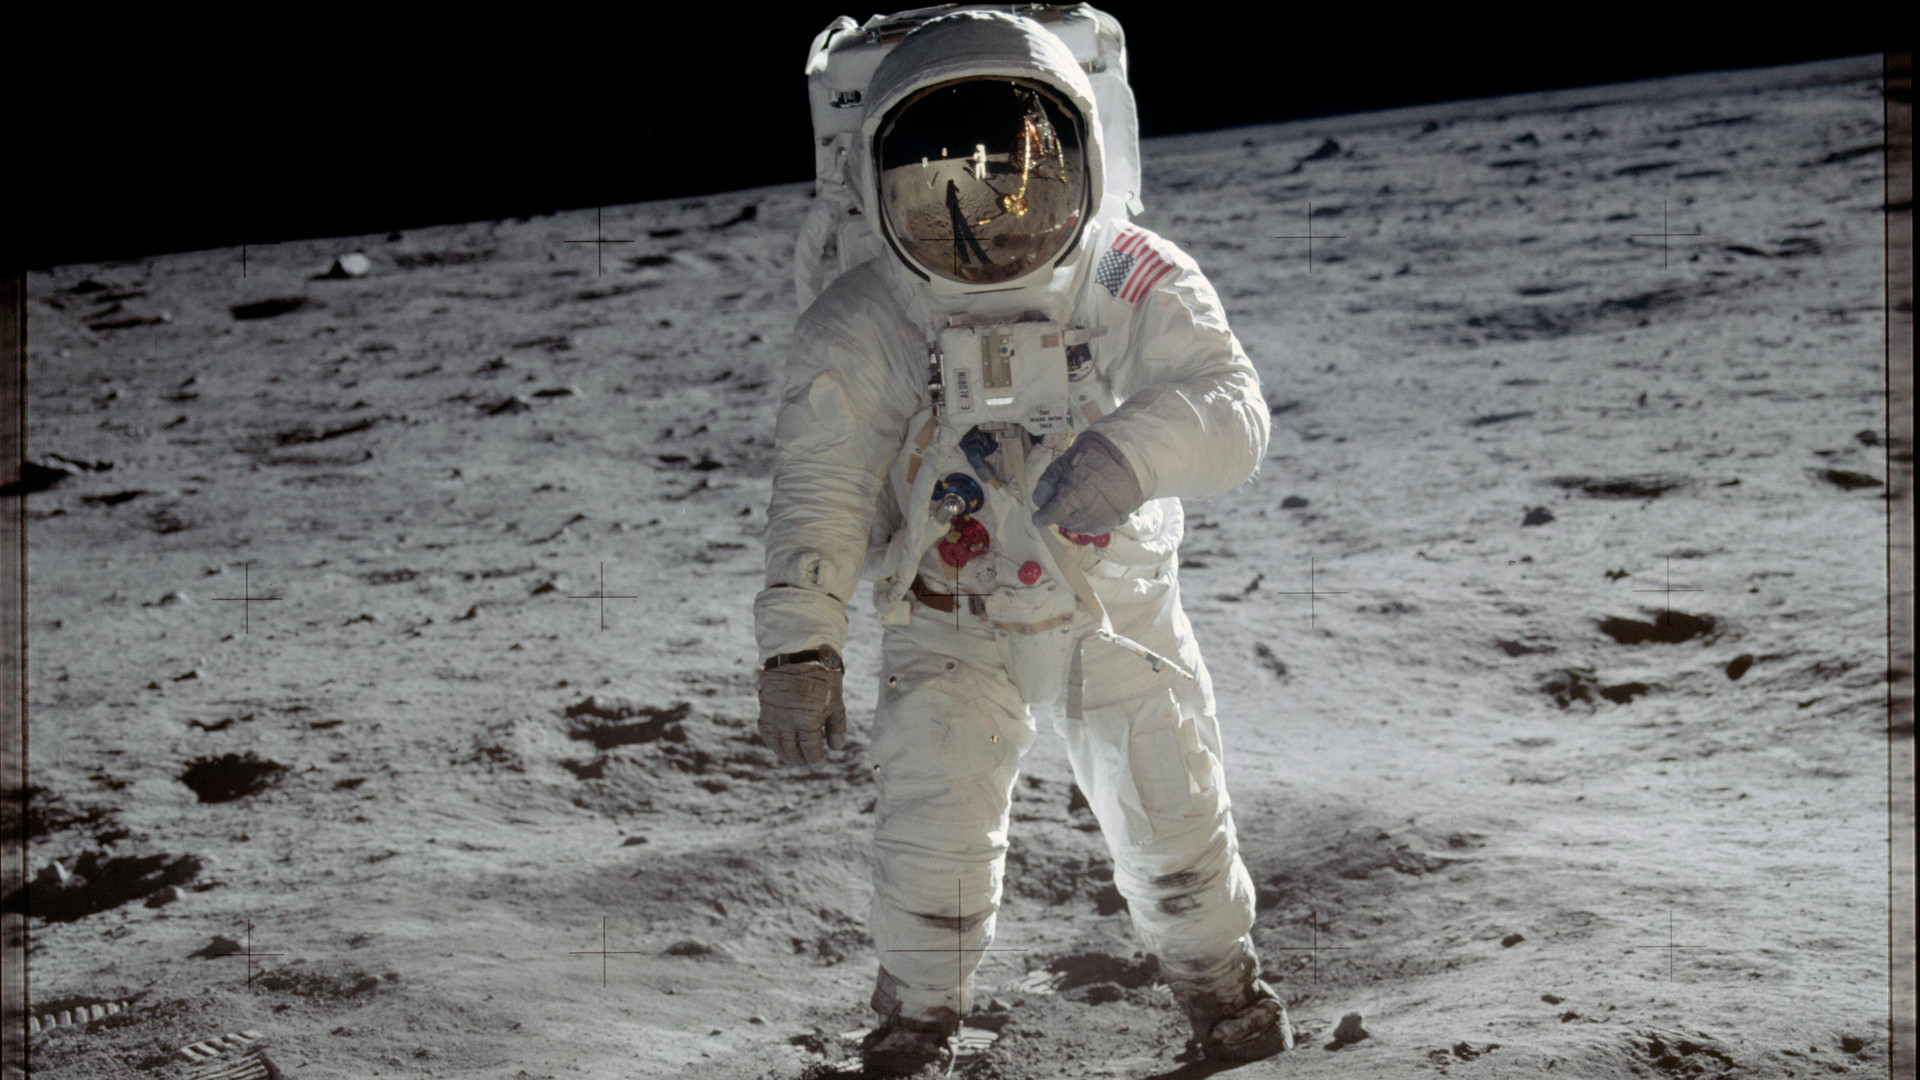 Buzz Aldrin on moon CROPPED.jpg